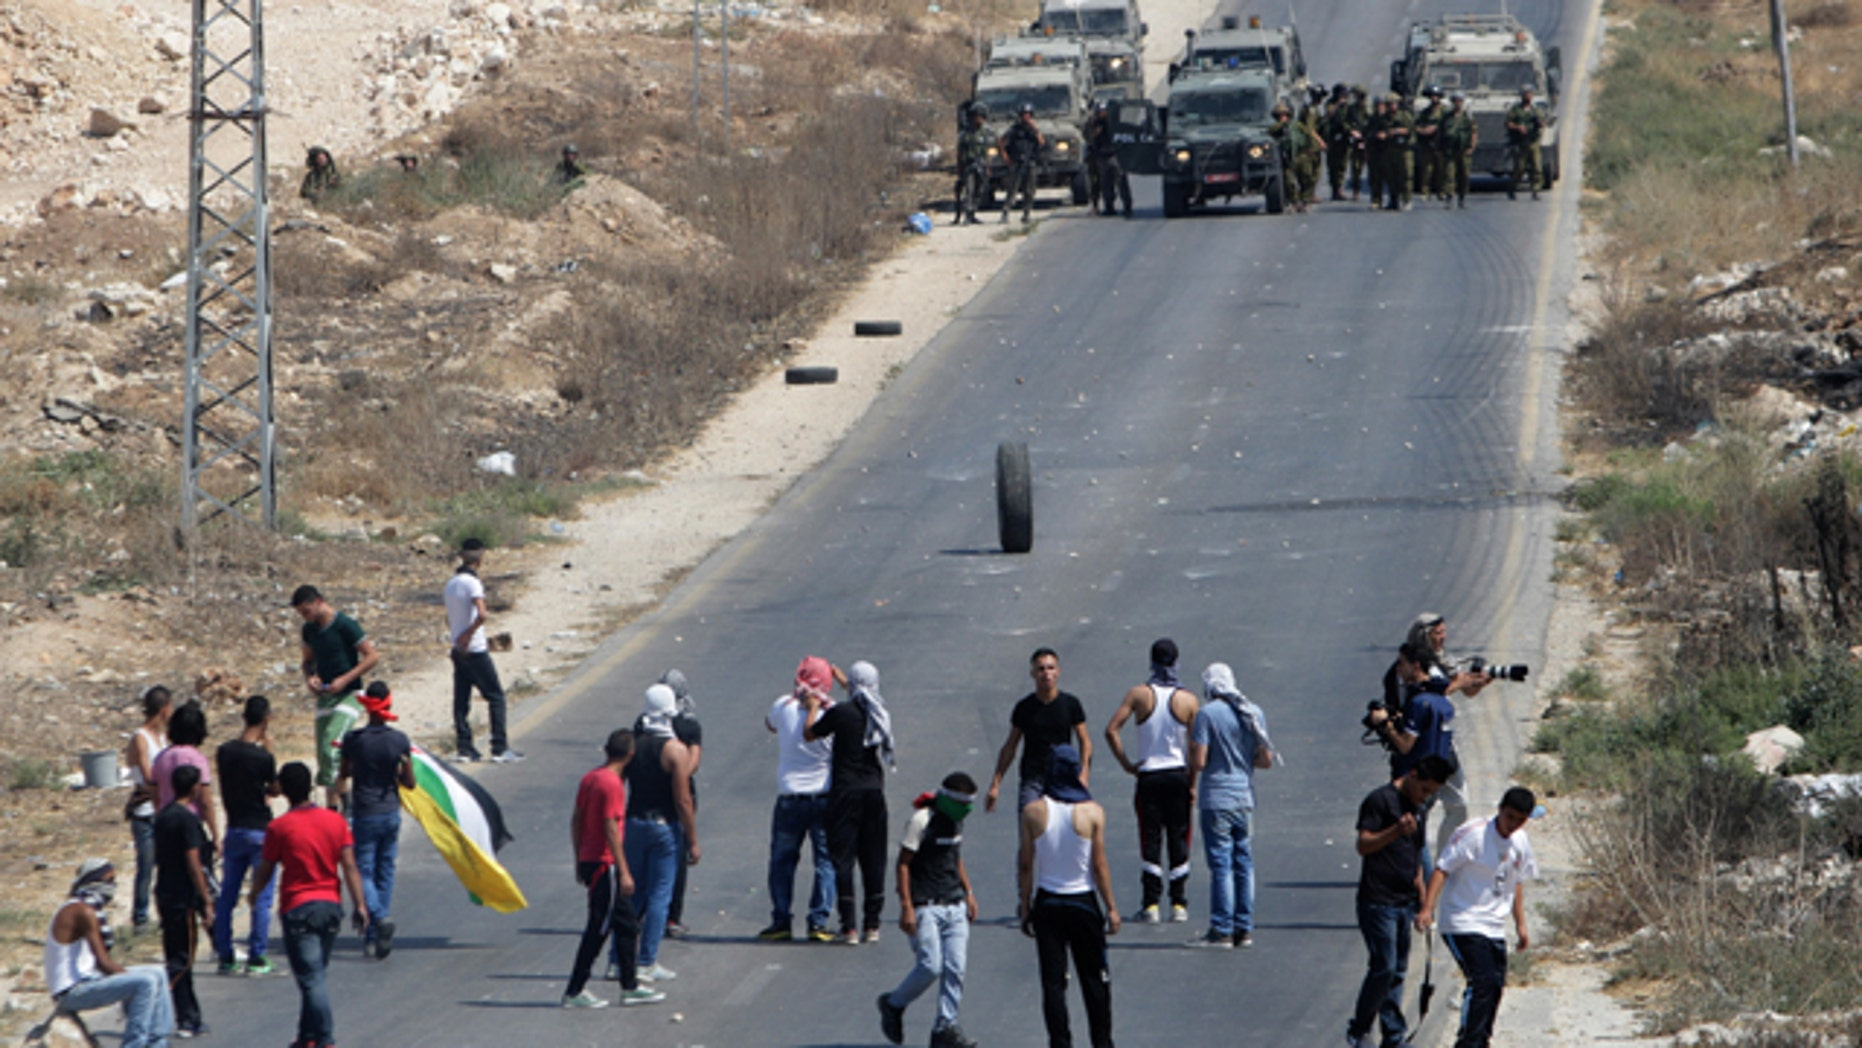 August 15, 2014: Palestinian protesters face Israeli soldiers during clashes near the West Bank city of Nablus. (AP)